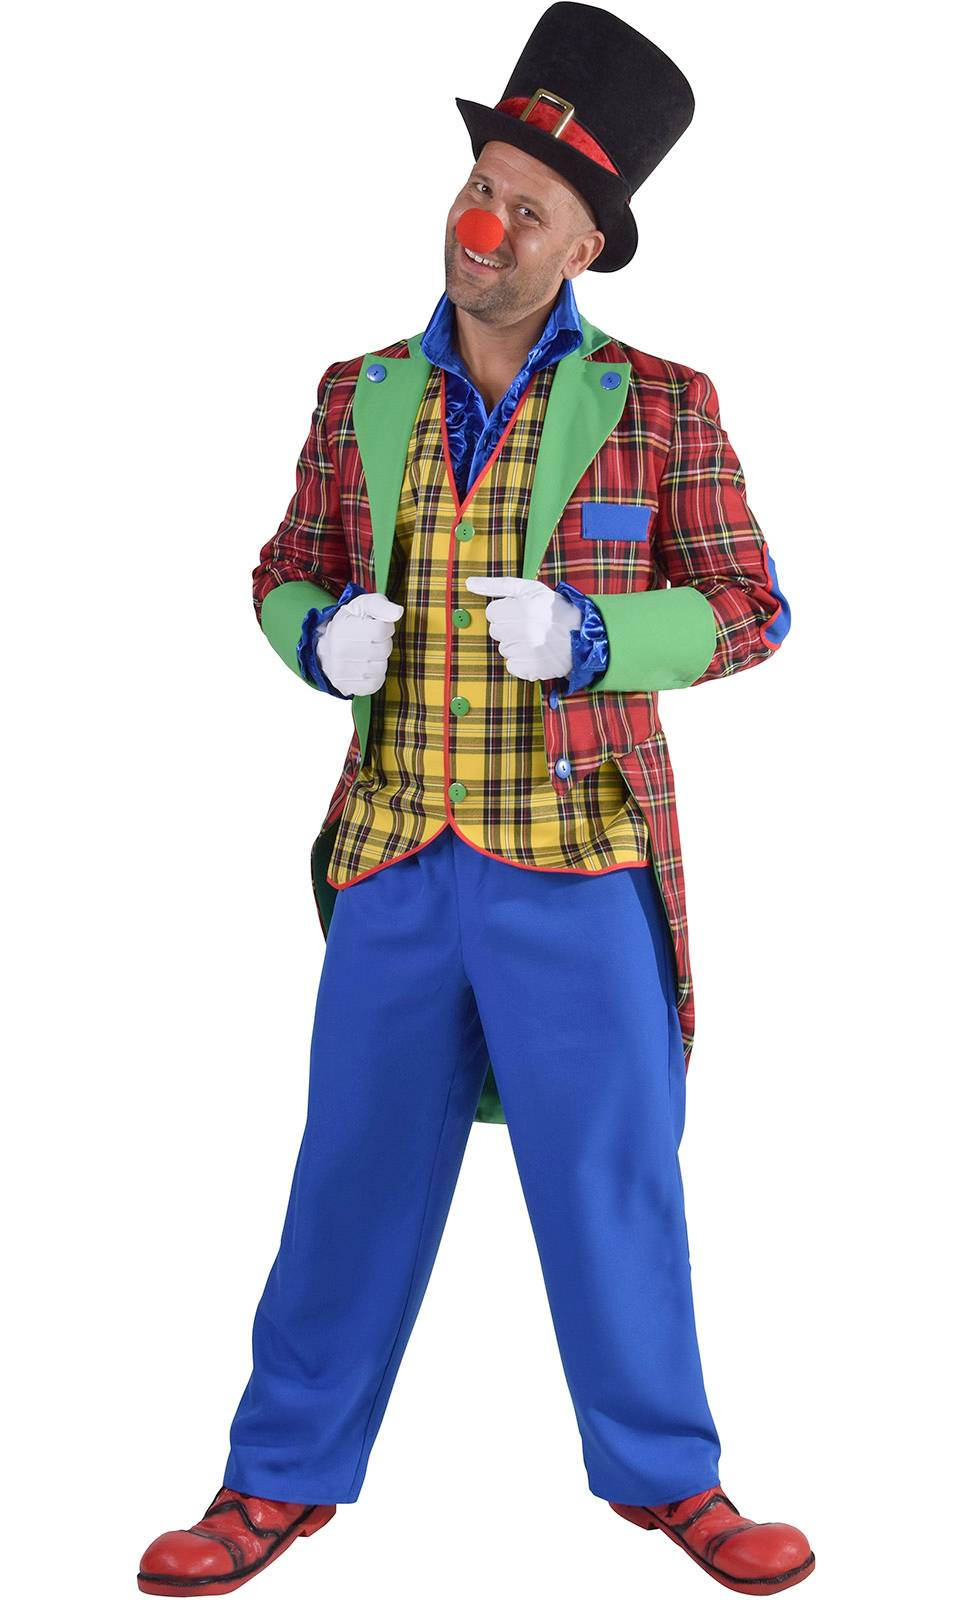 Costume-Clown-Homme-Luxe-Grande-taille